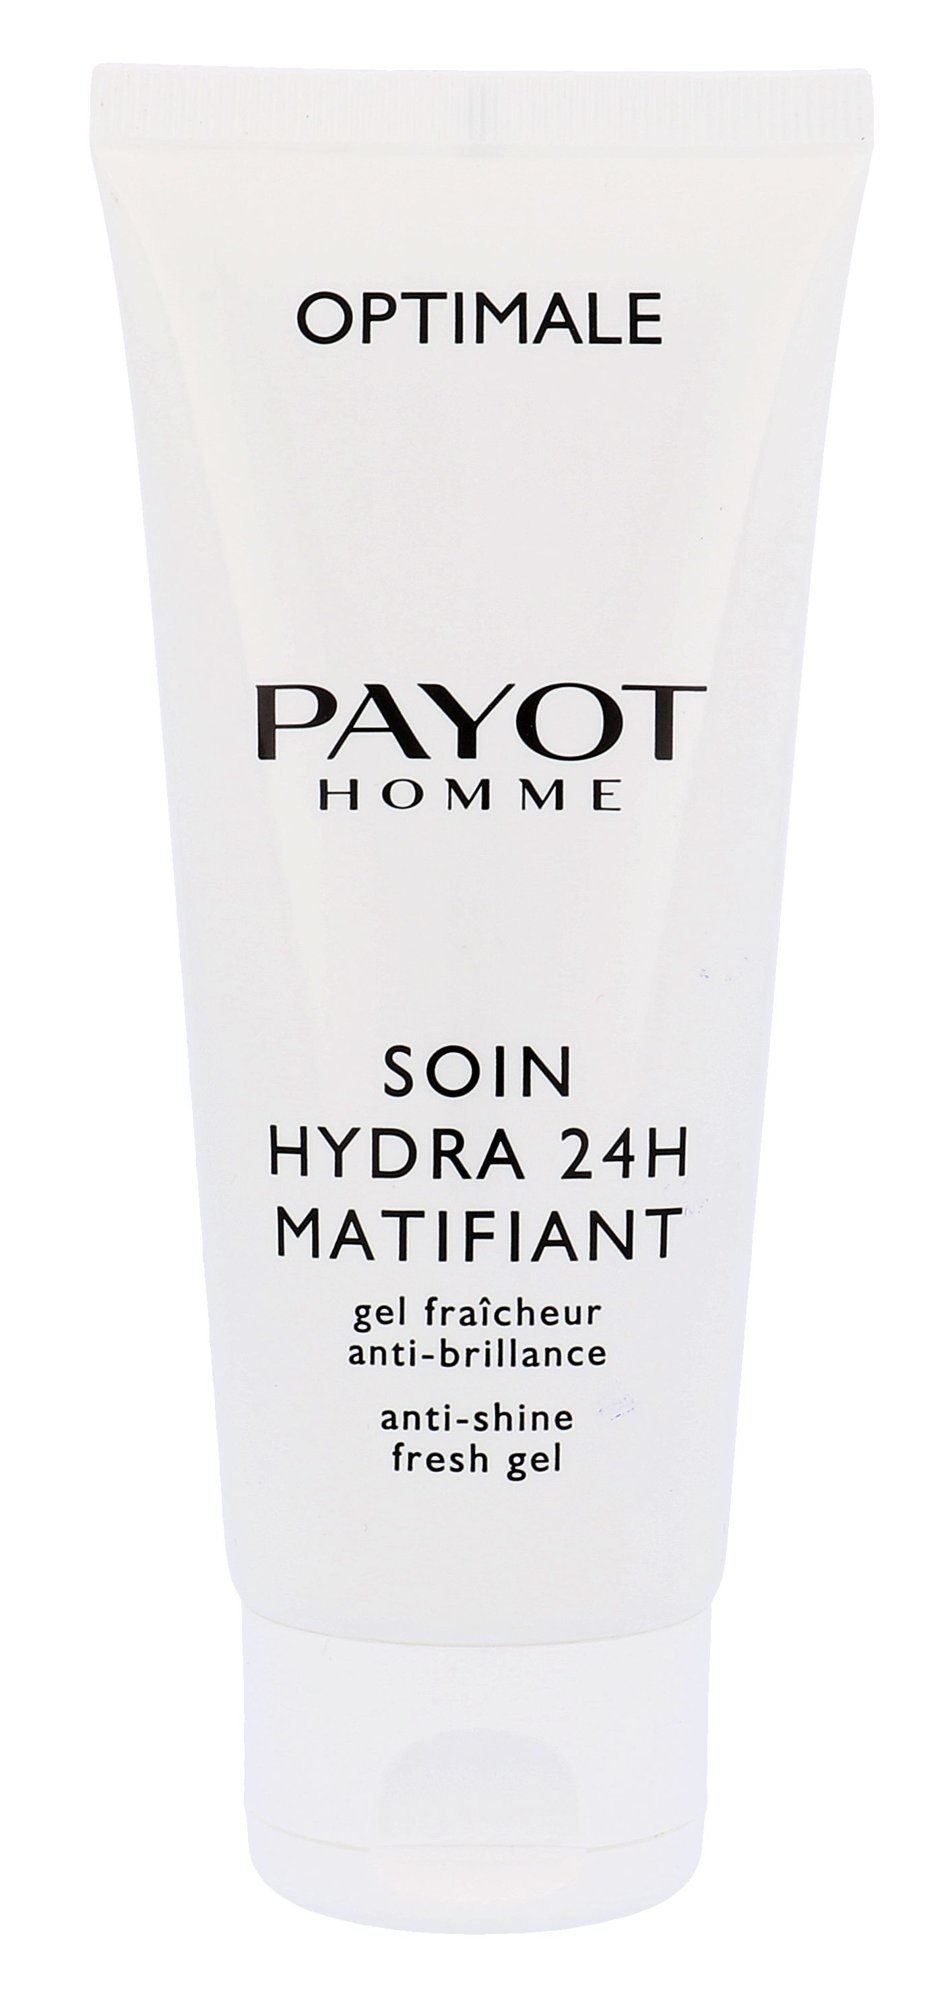 PAYOT Homme Optimale Cosmetic 100ml